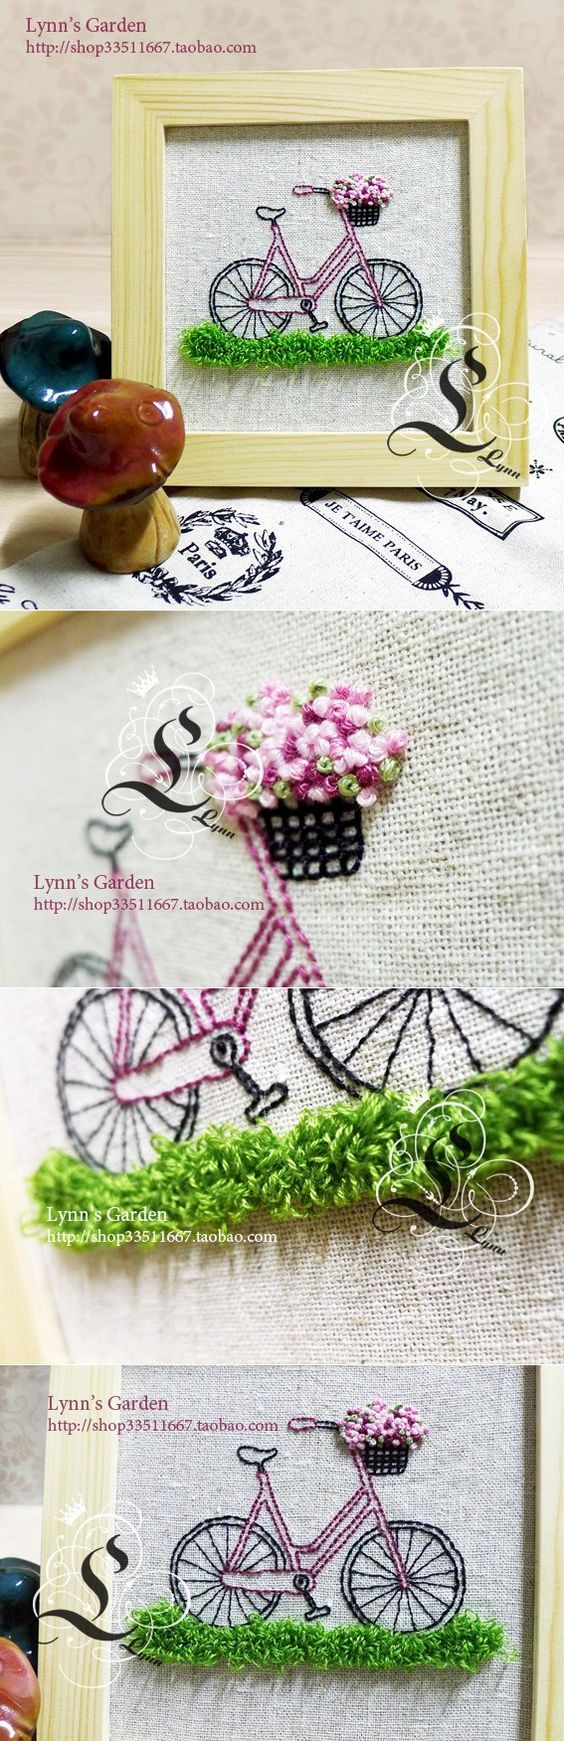 Bicycle Embroidery: